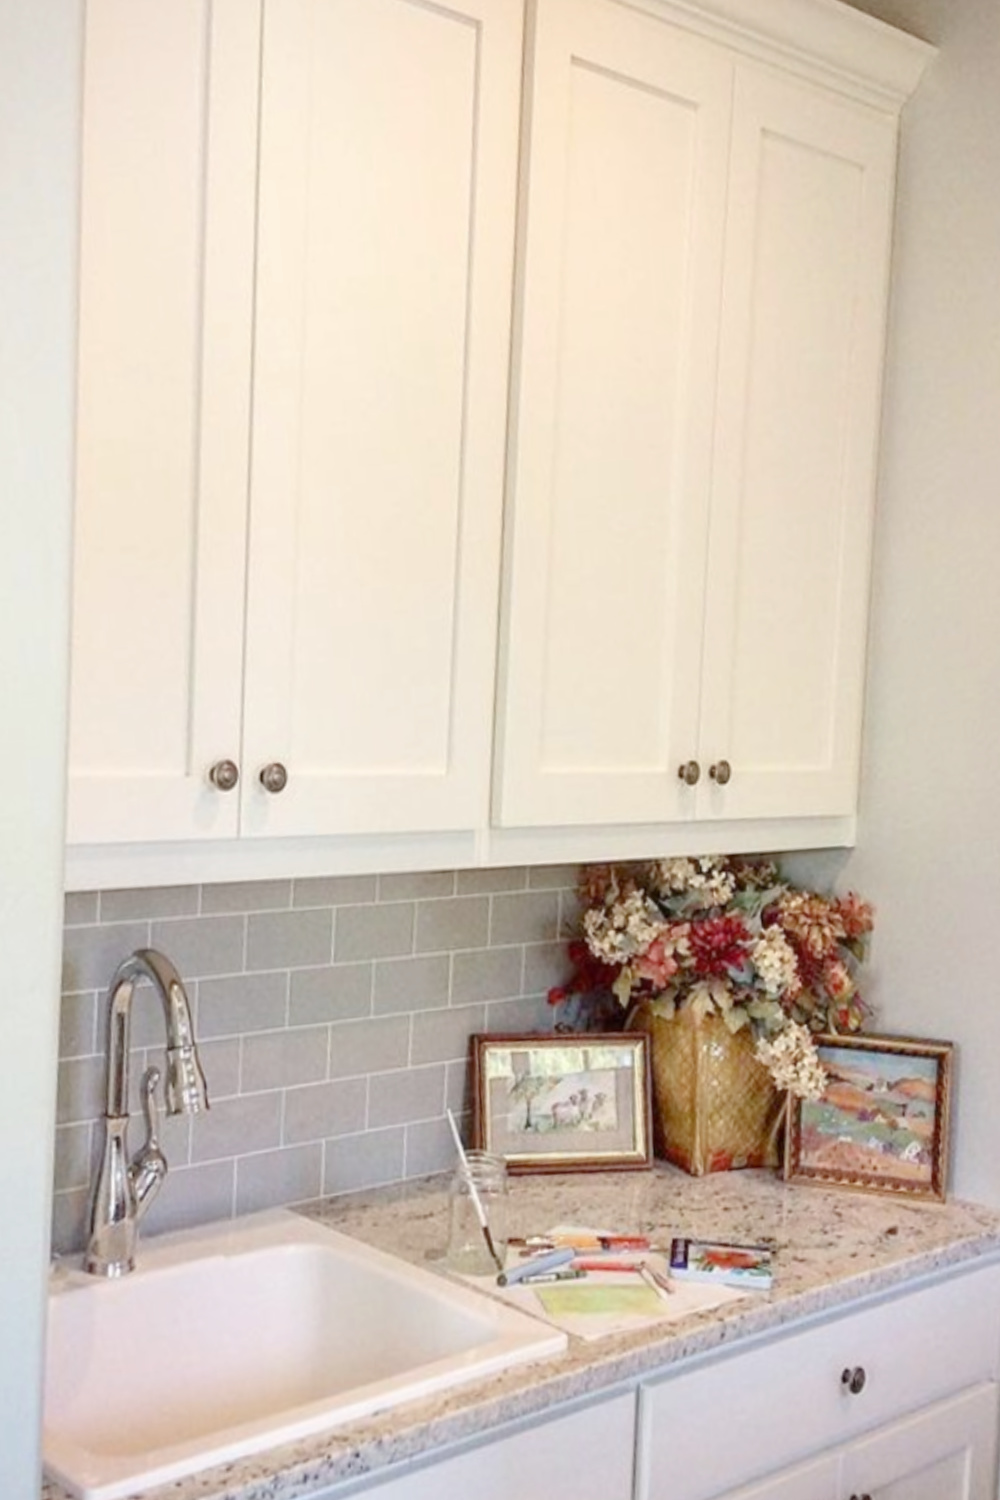 Laundry room painted pale blue (Quiet Moments by Benjamin Moore) - @foundblessings. #quietmoments #benjaminmoorequietmoments